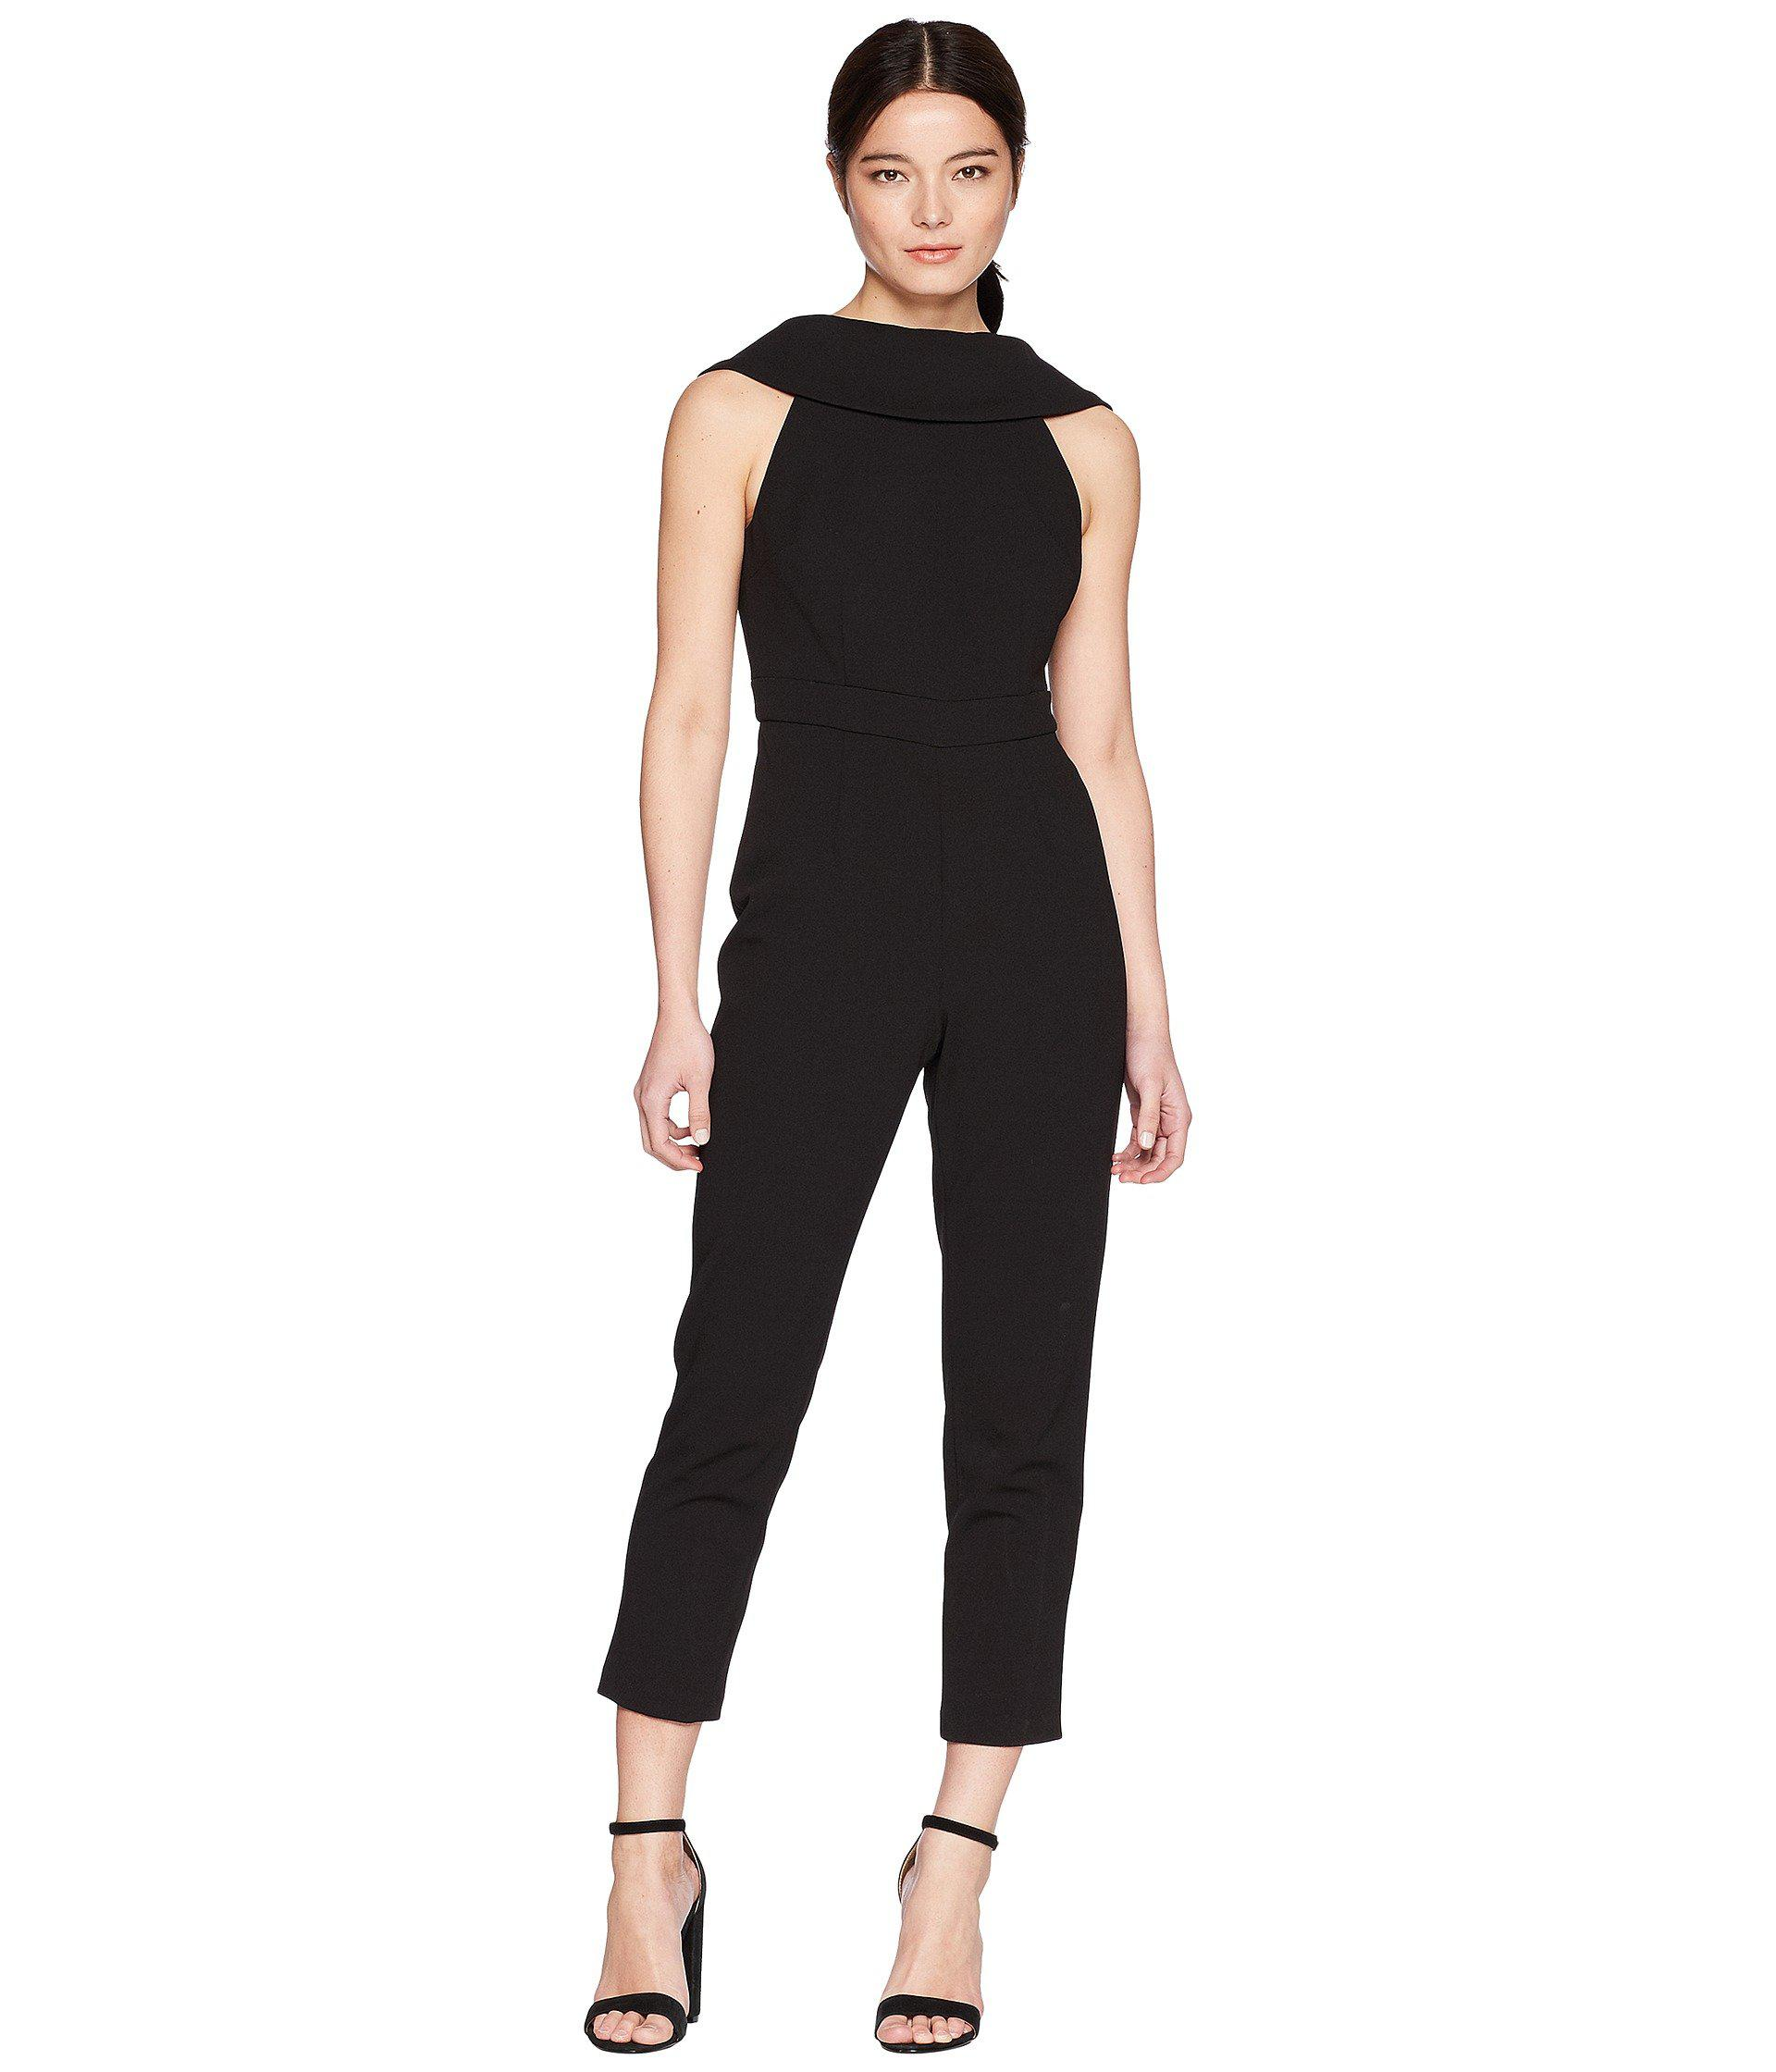 b3783d2e68c Lyst - Adrianna Papell Petite Knit Crepe Roll Neck Jumpsuit in Black